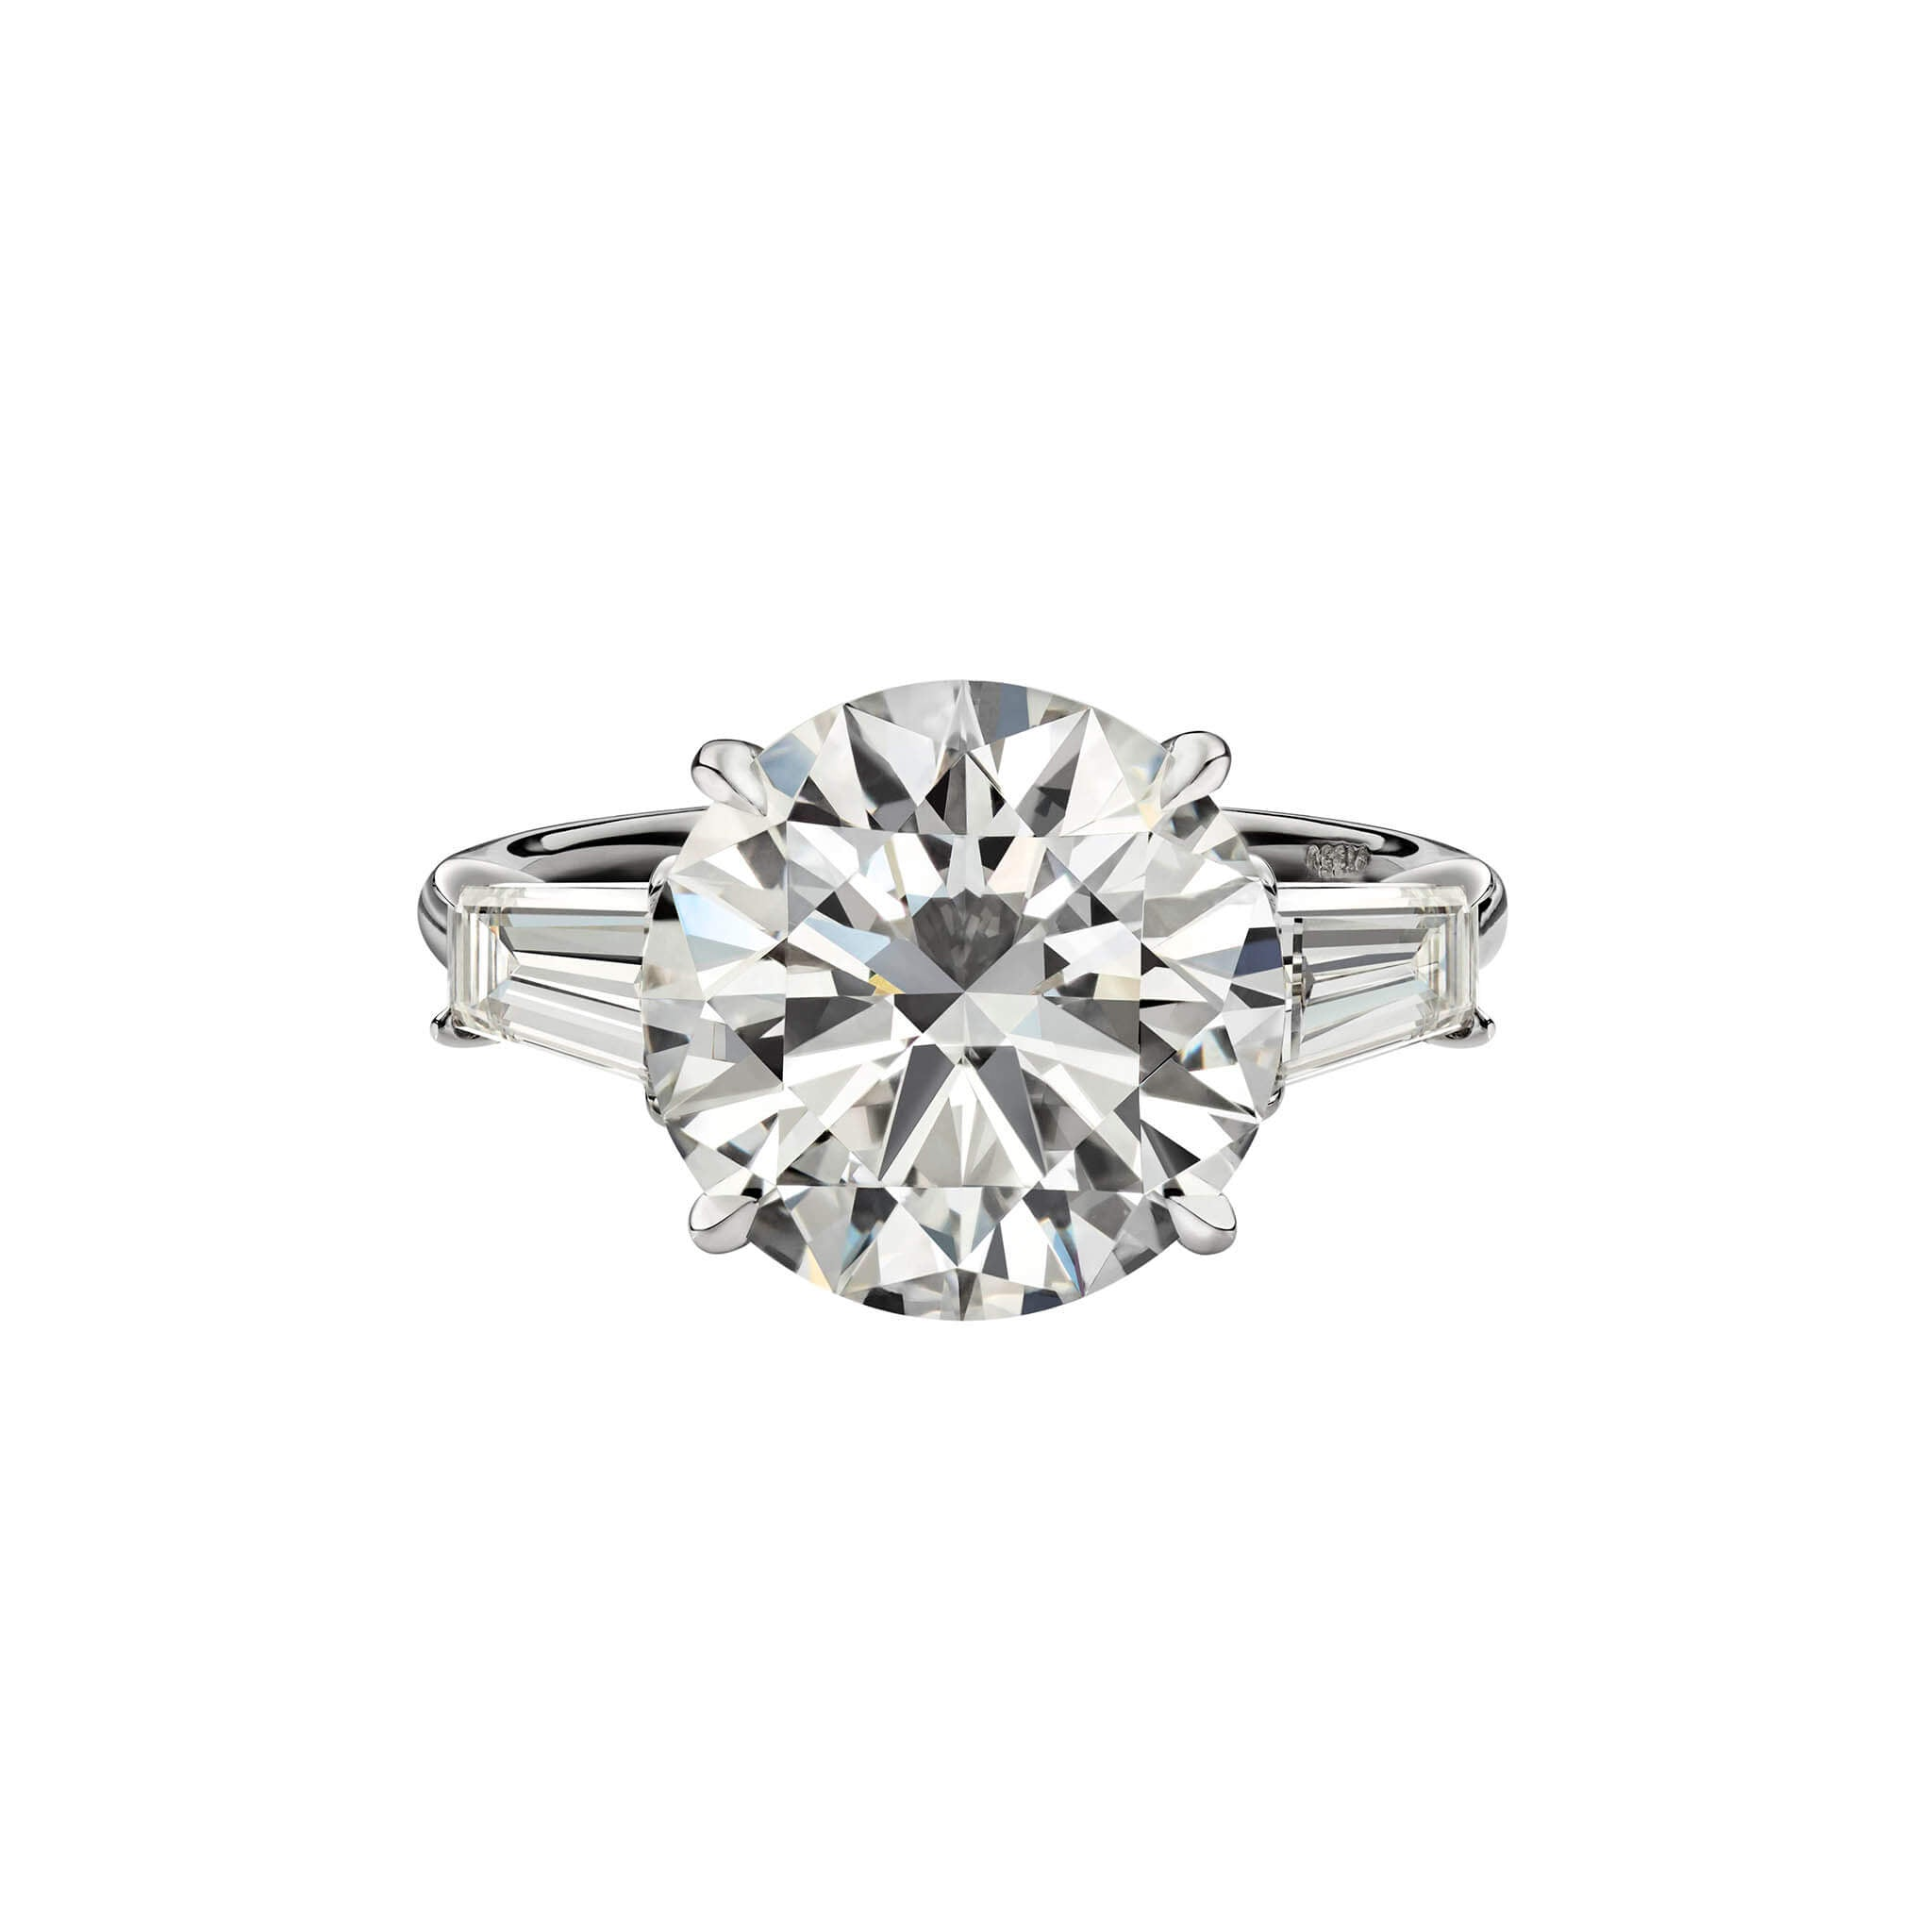 5 83 Carat Round Brilliant Cut Engagement Ring With Tapered Baguettes Stephanie Gottlieb